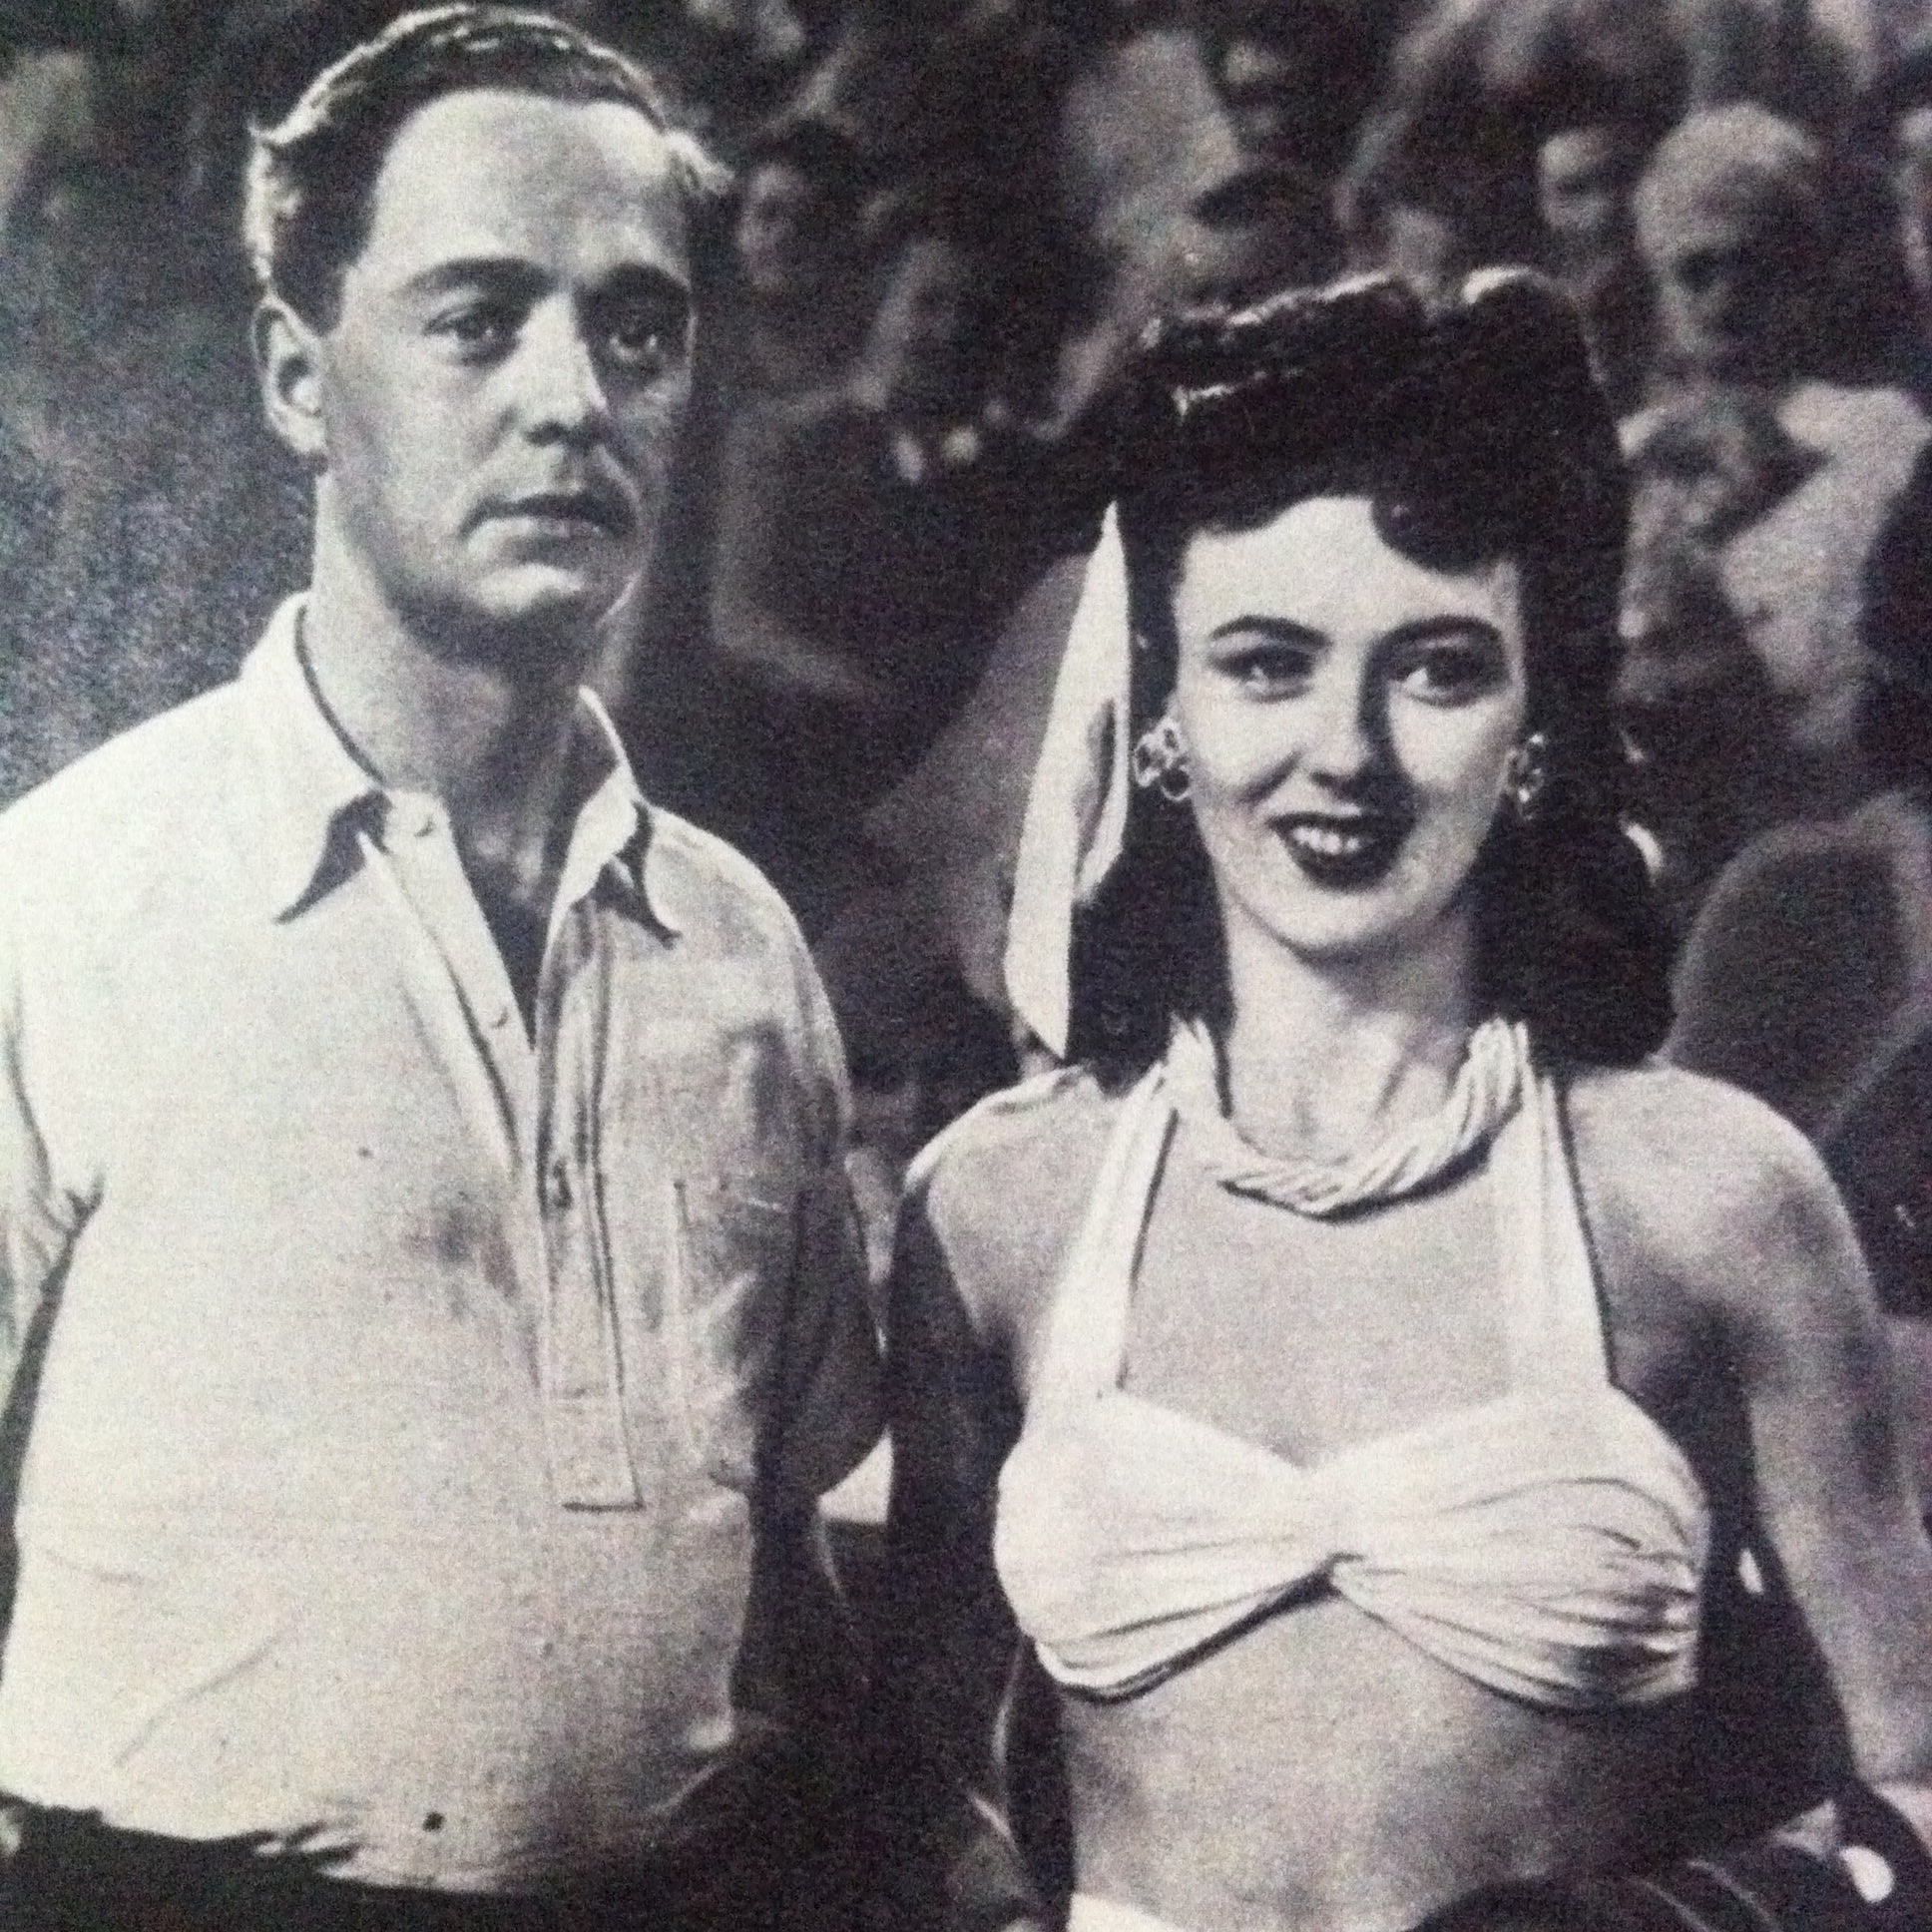 Jimmy Hanley and Yvonne Owen in Holiday Camp (1947)